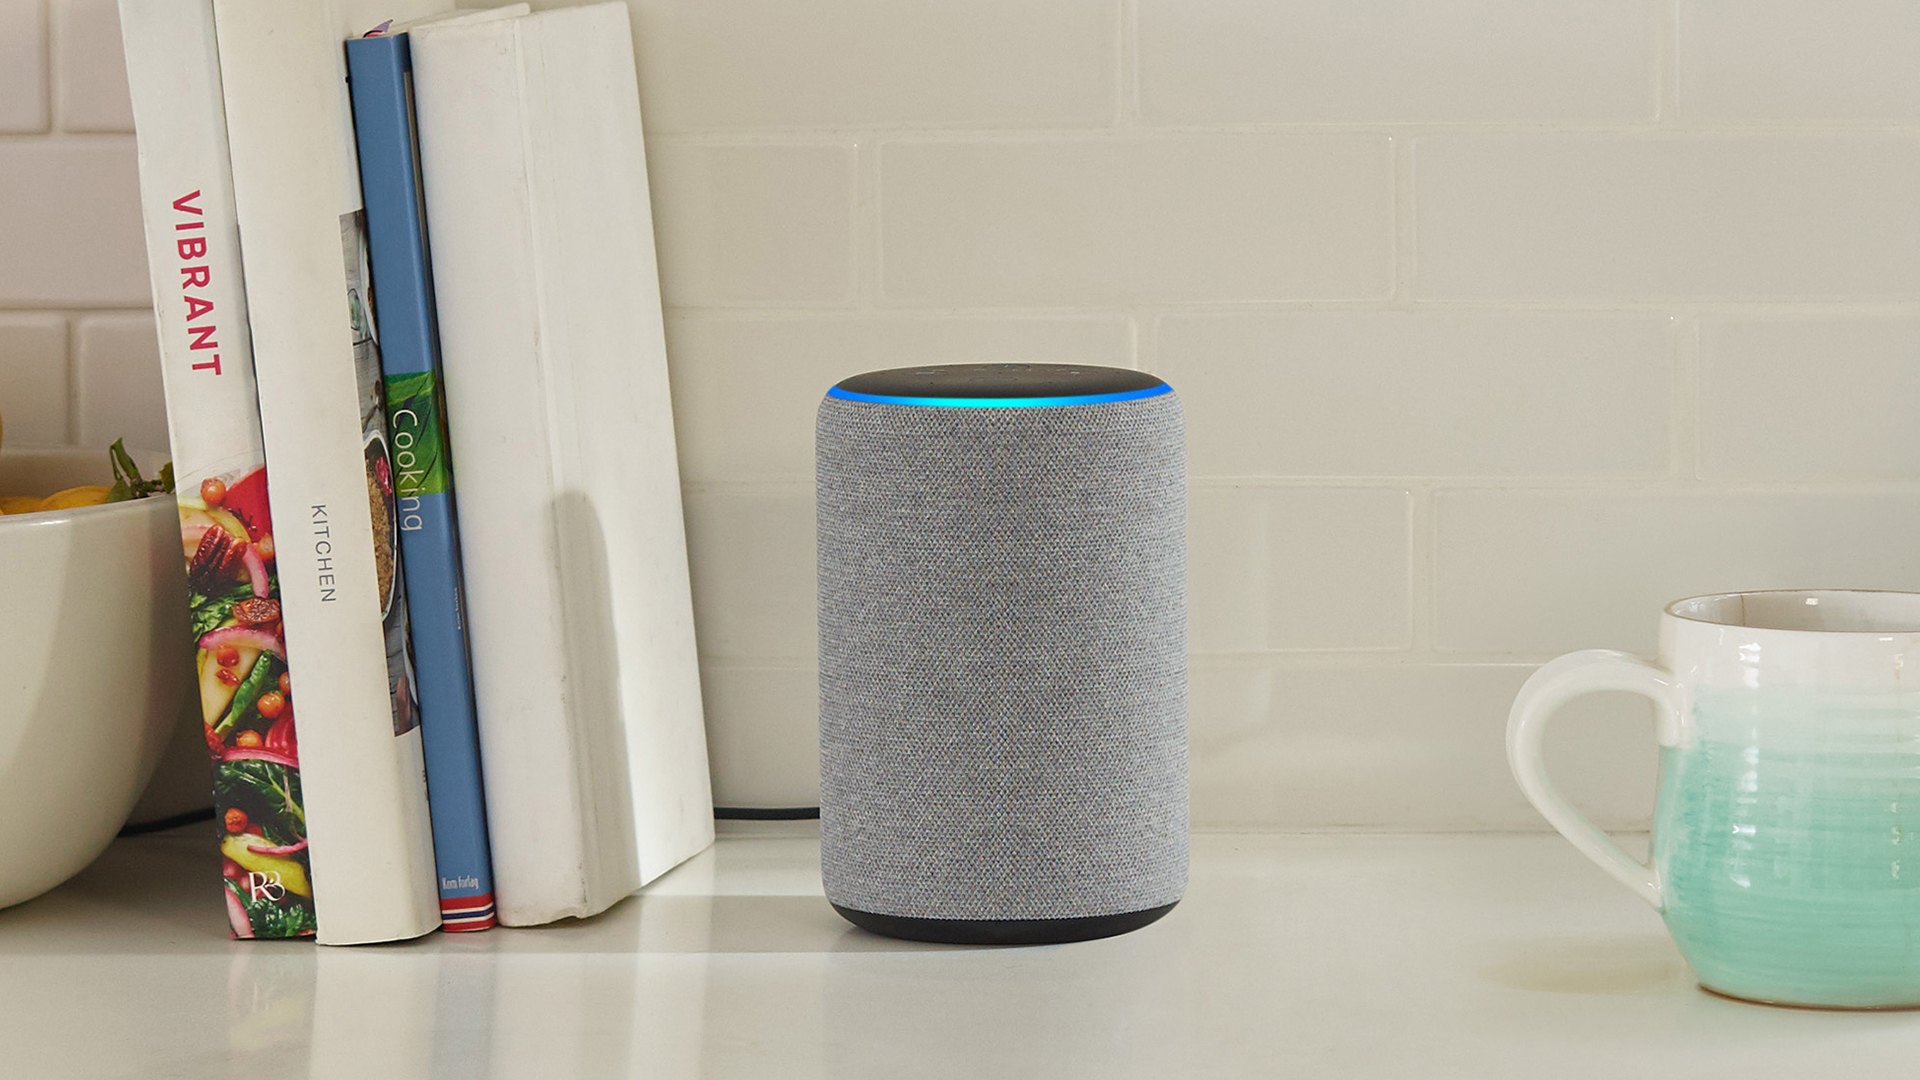 Top 10 Smart Home Gadgets 2019 - Amazon Echo Plus (DigitaleWelt)